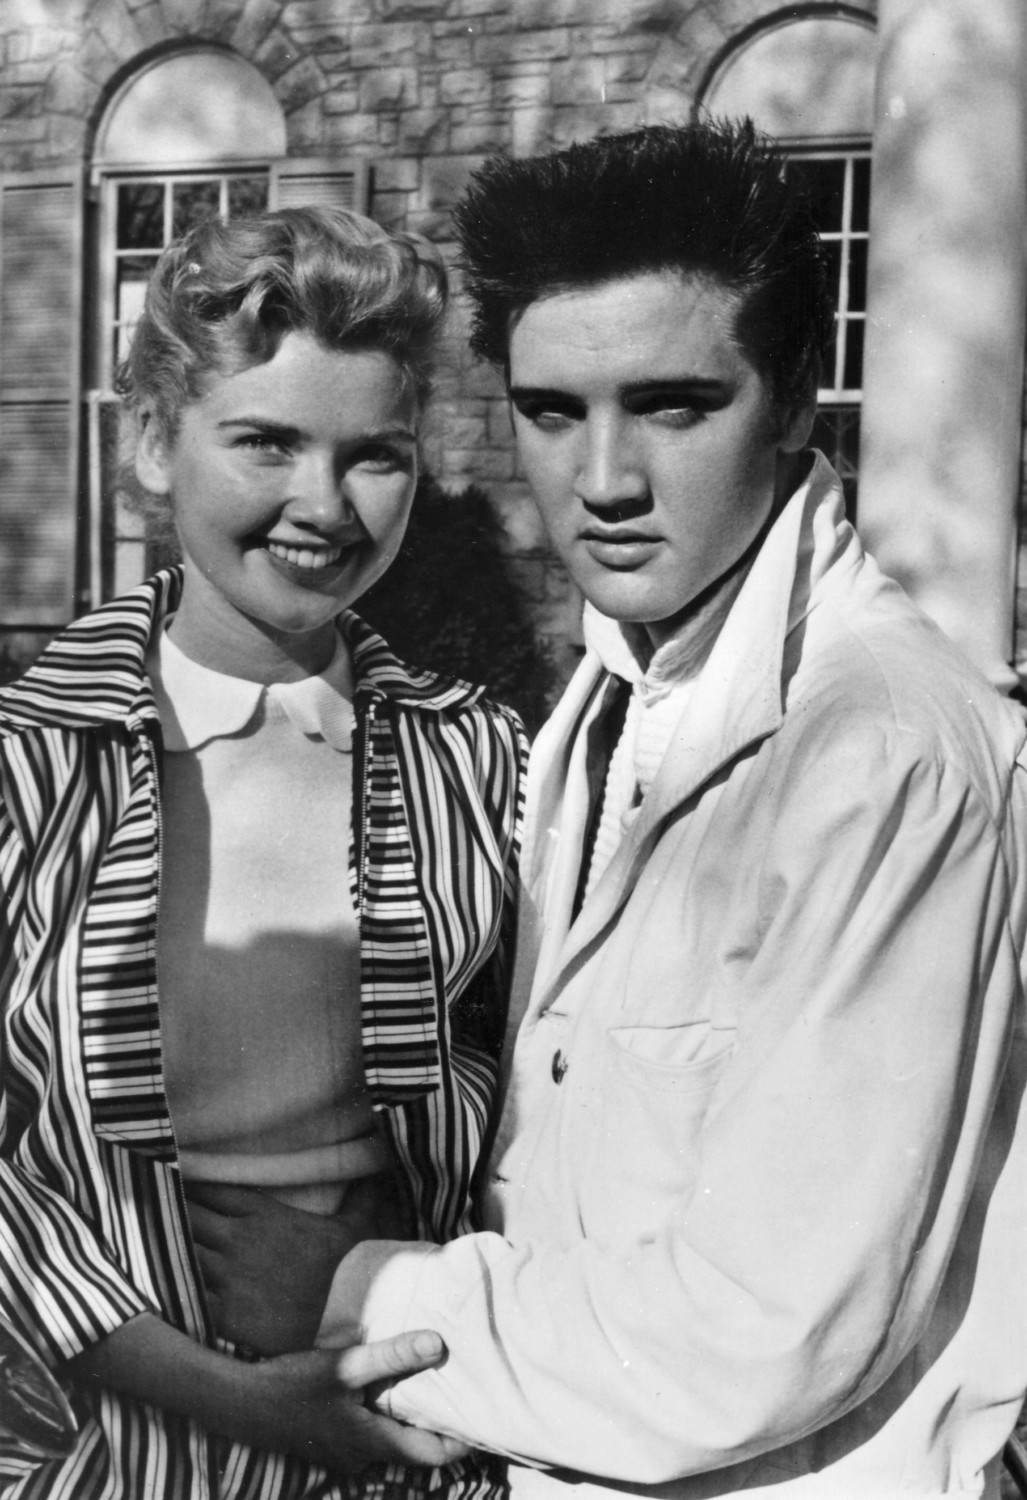 Elvis and Yvonne Lime Easter weekend at Graceland April 1957